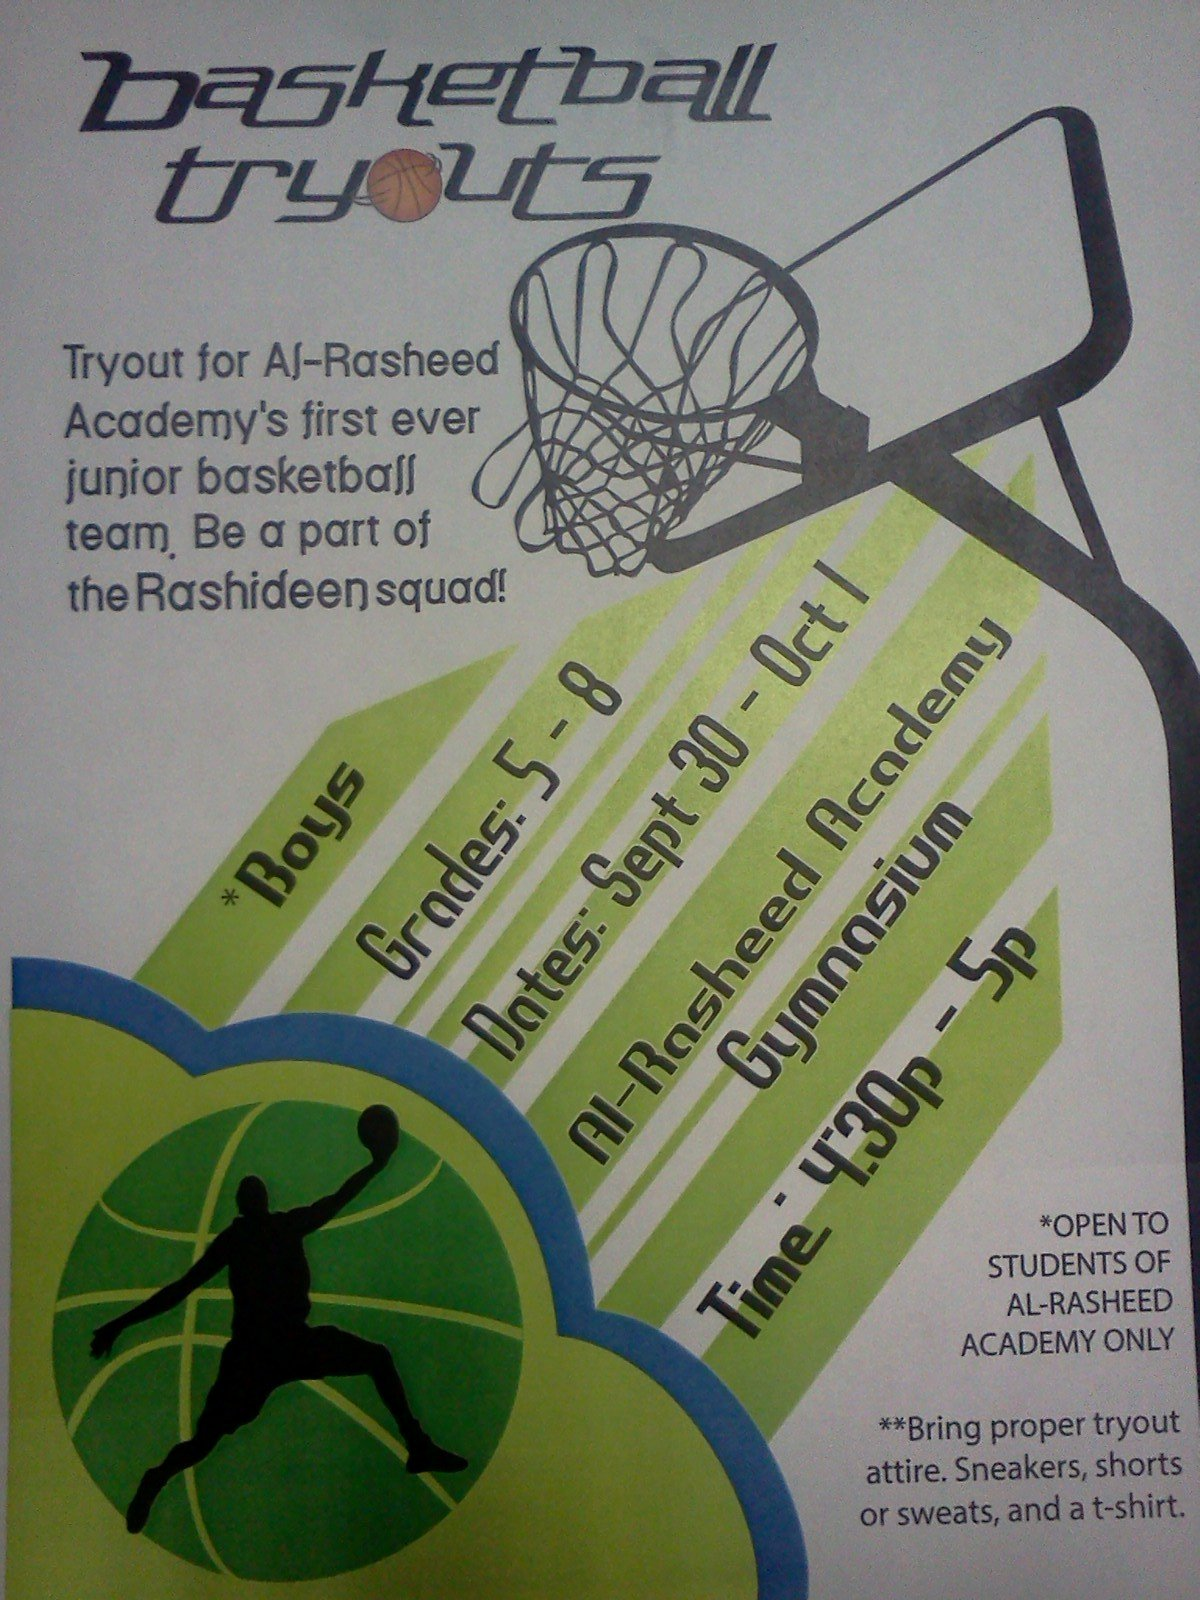 Basketball Tryout Flyer Template Beautiful October 2013 – Welove2learn